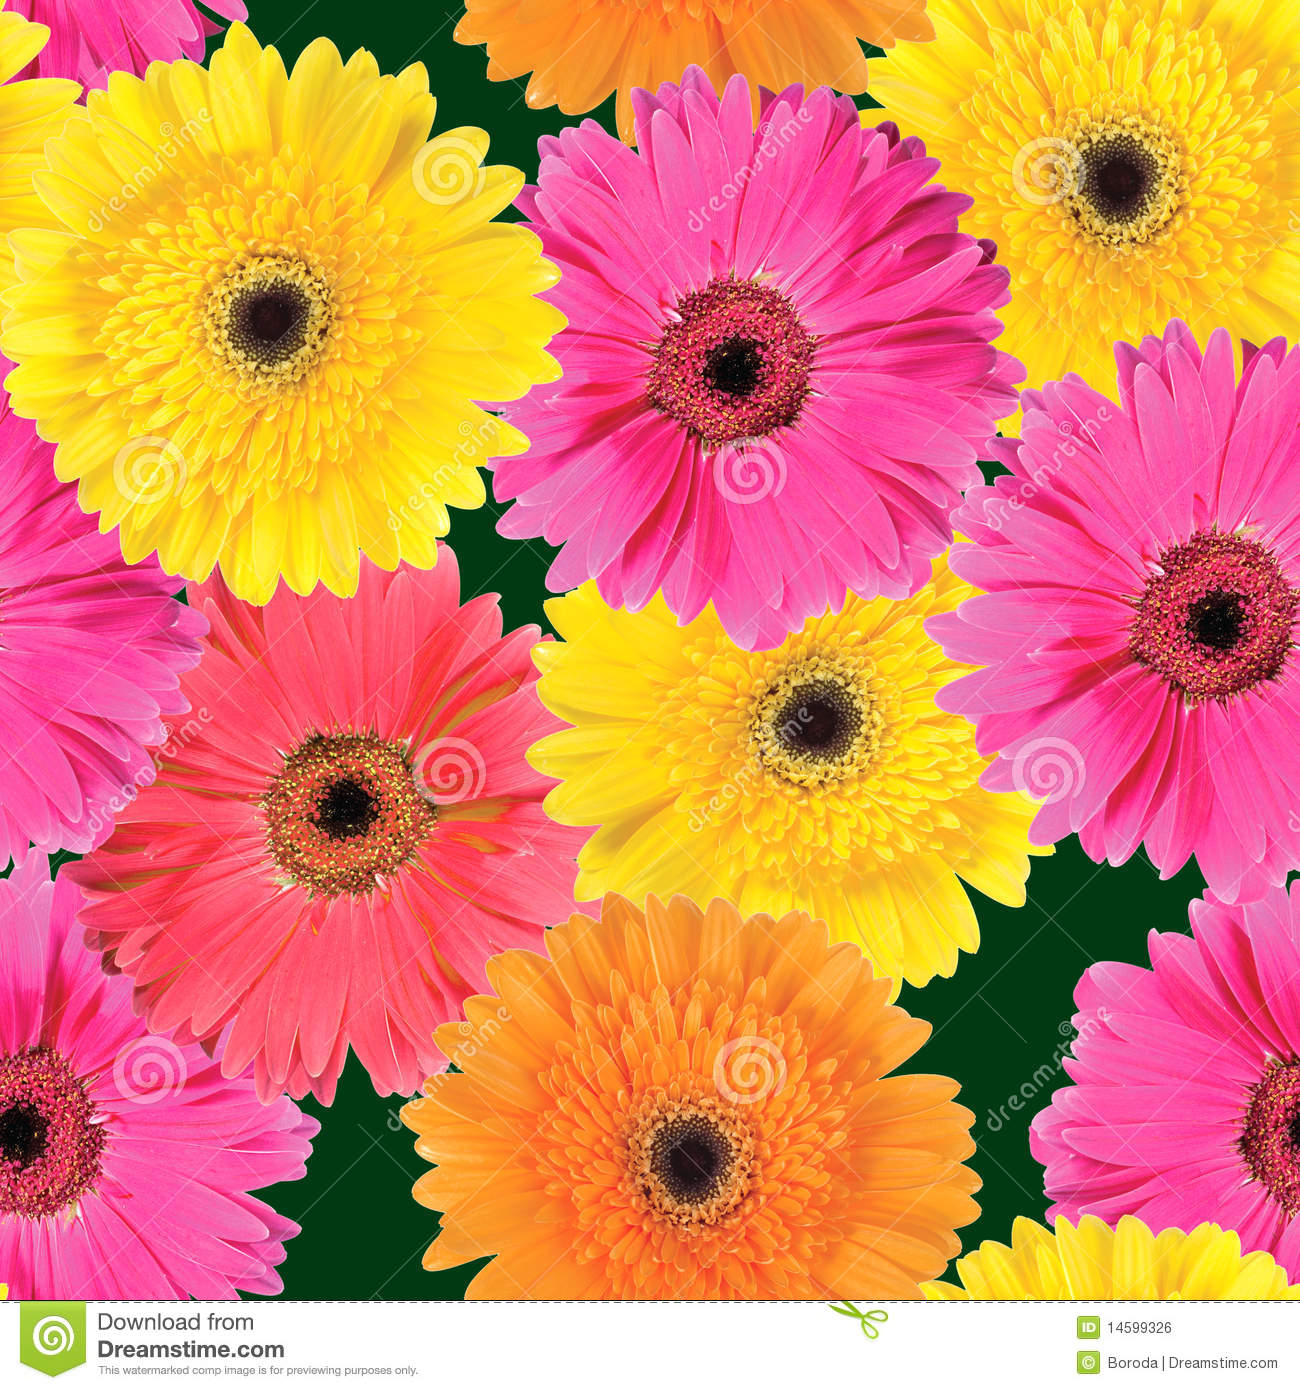 Background of pink yellow and orange flowers stock photo image of background of pink yellow and orange flowers mightylinksfo